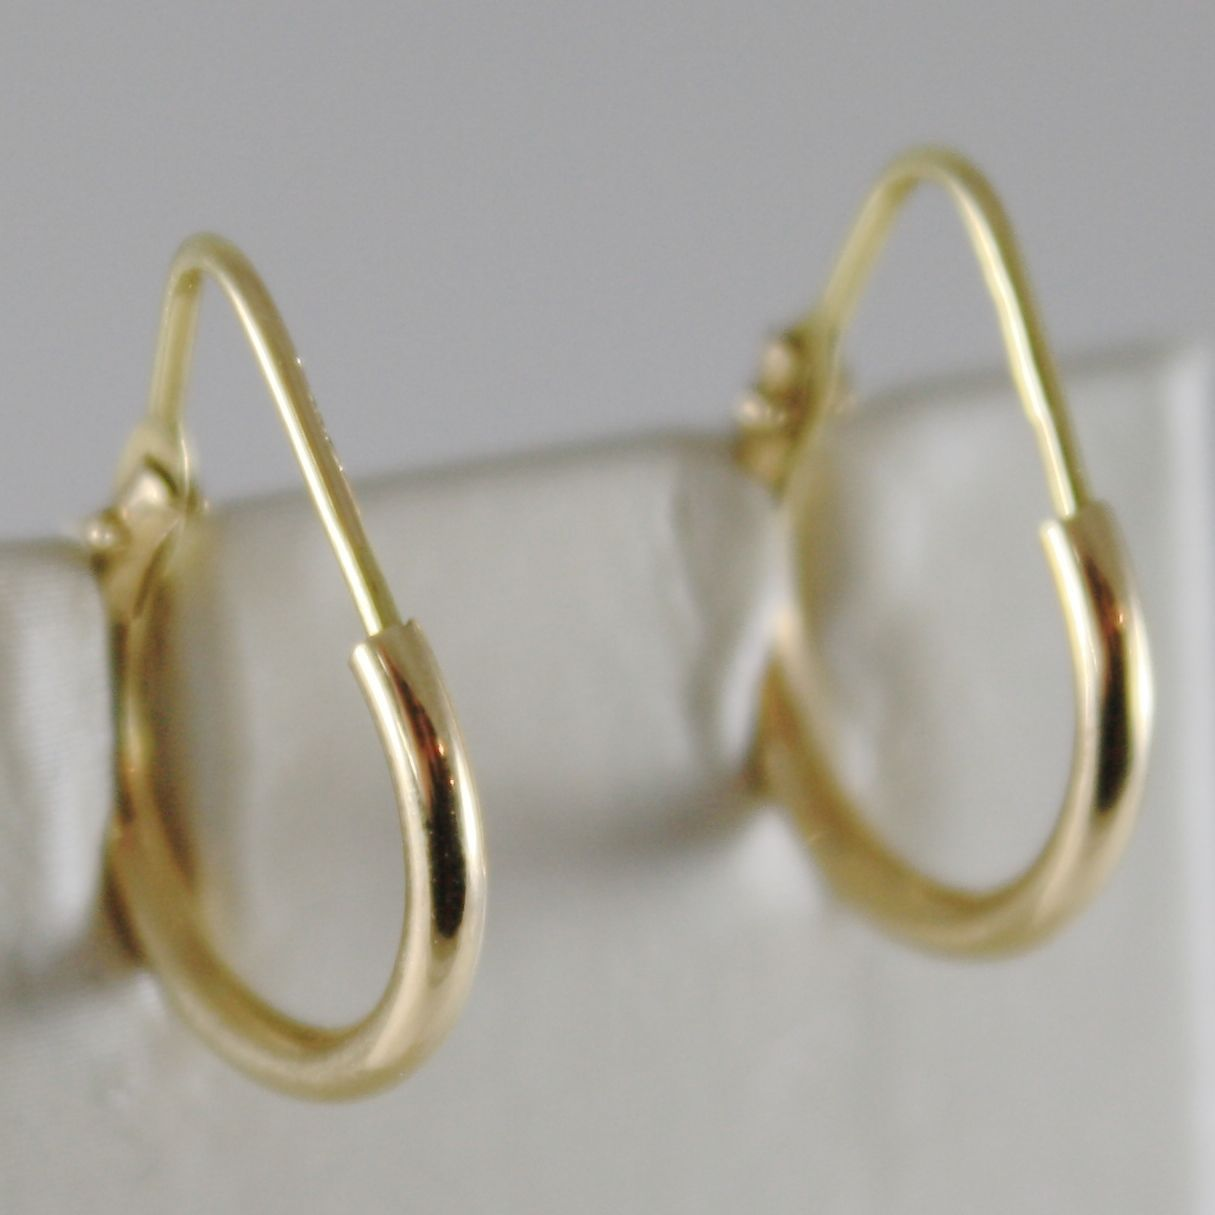 18K YELLOW GOLD EARRINGS MINI CIRCLE HOOP 14 MM 0.55 IN DIAMETER MADE IN ITALY